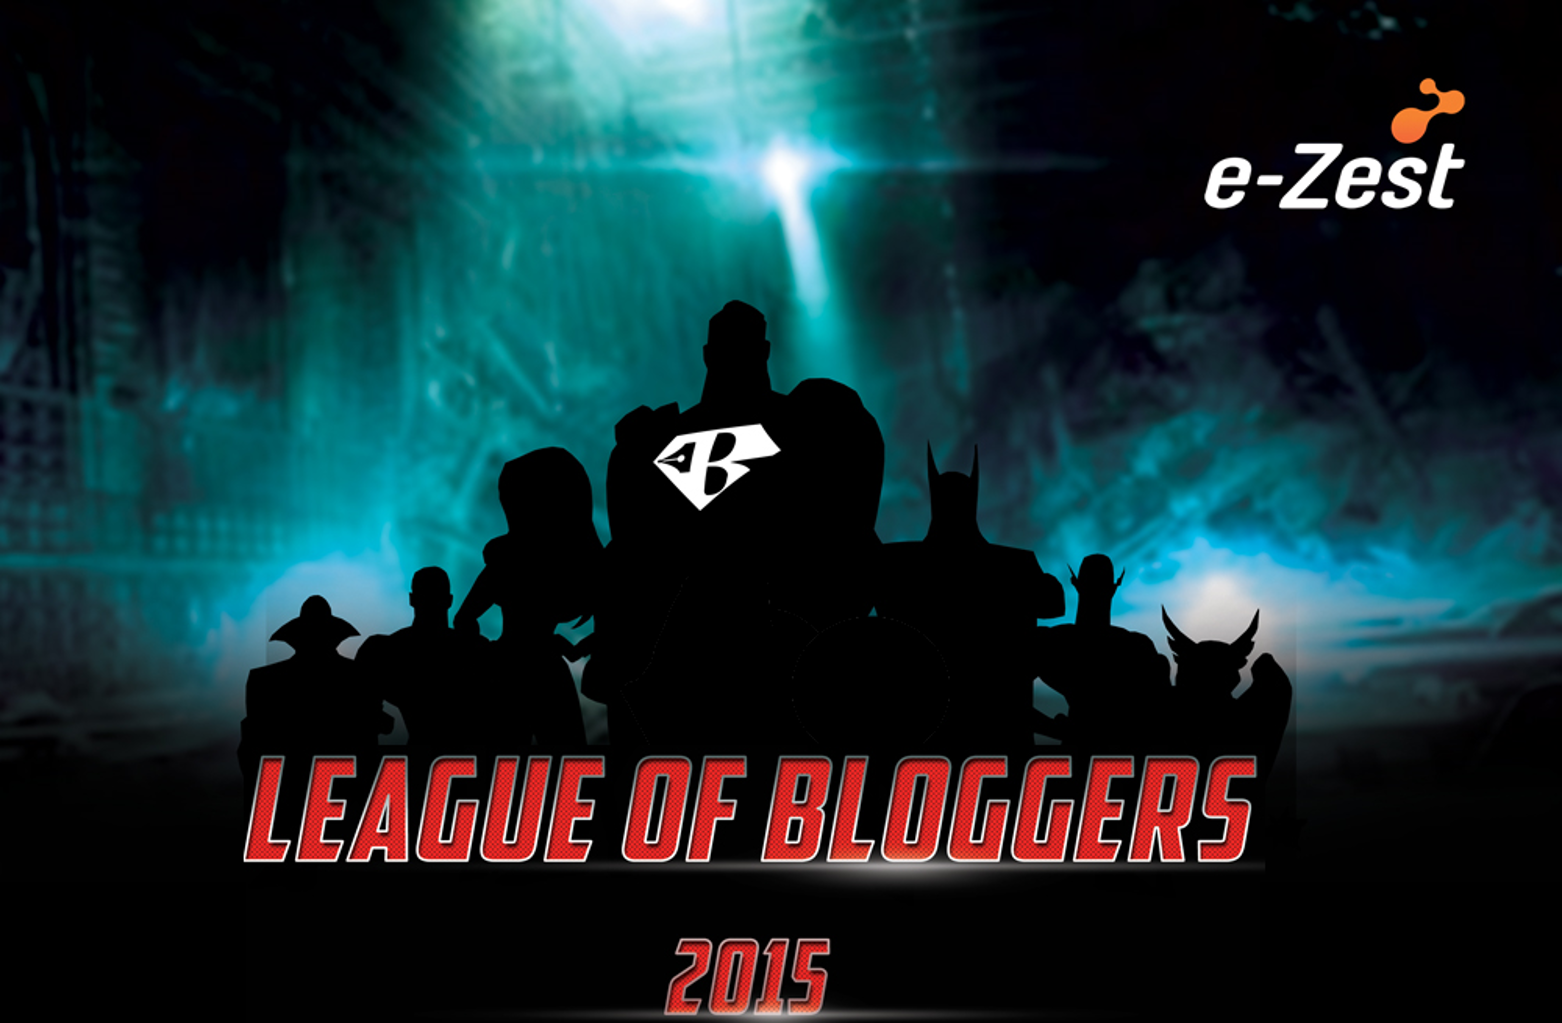 league_of_bloggers.png